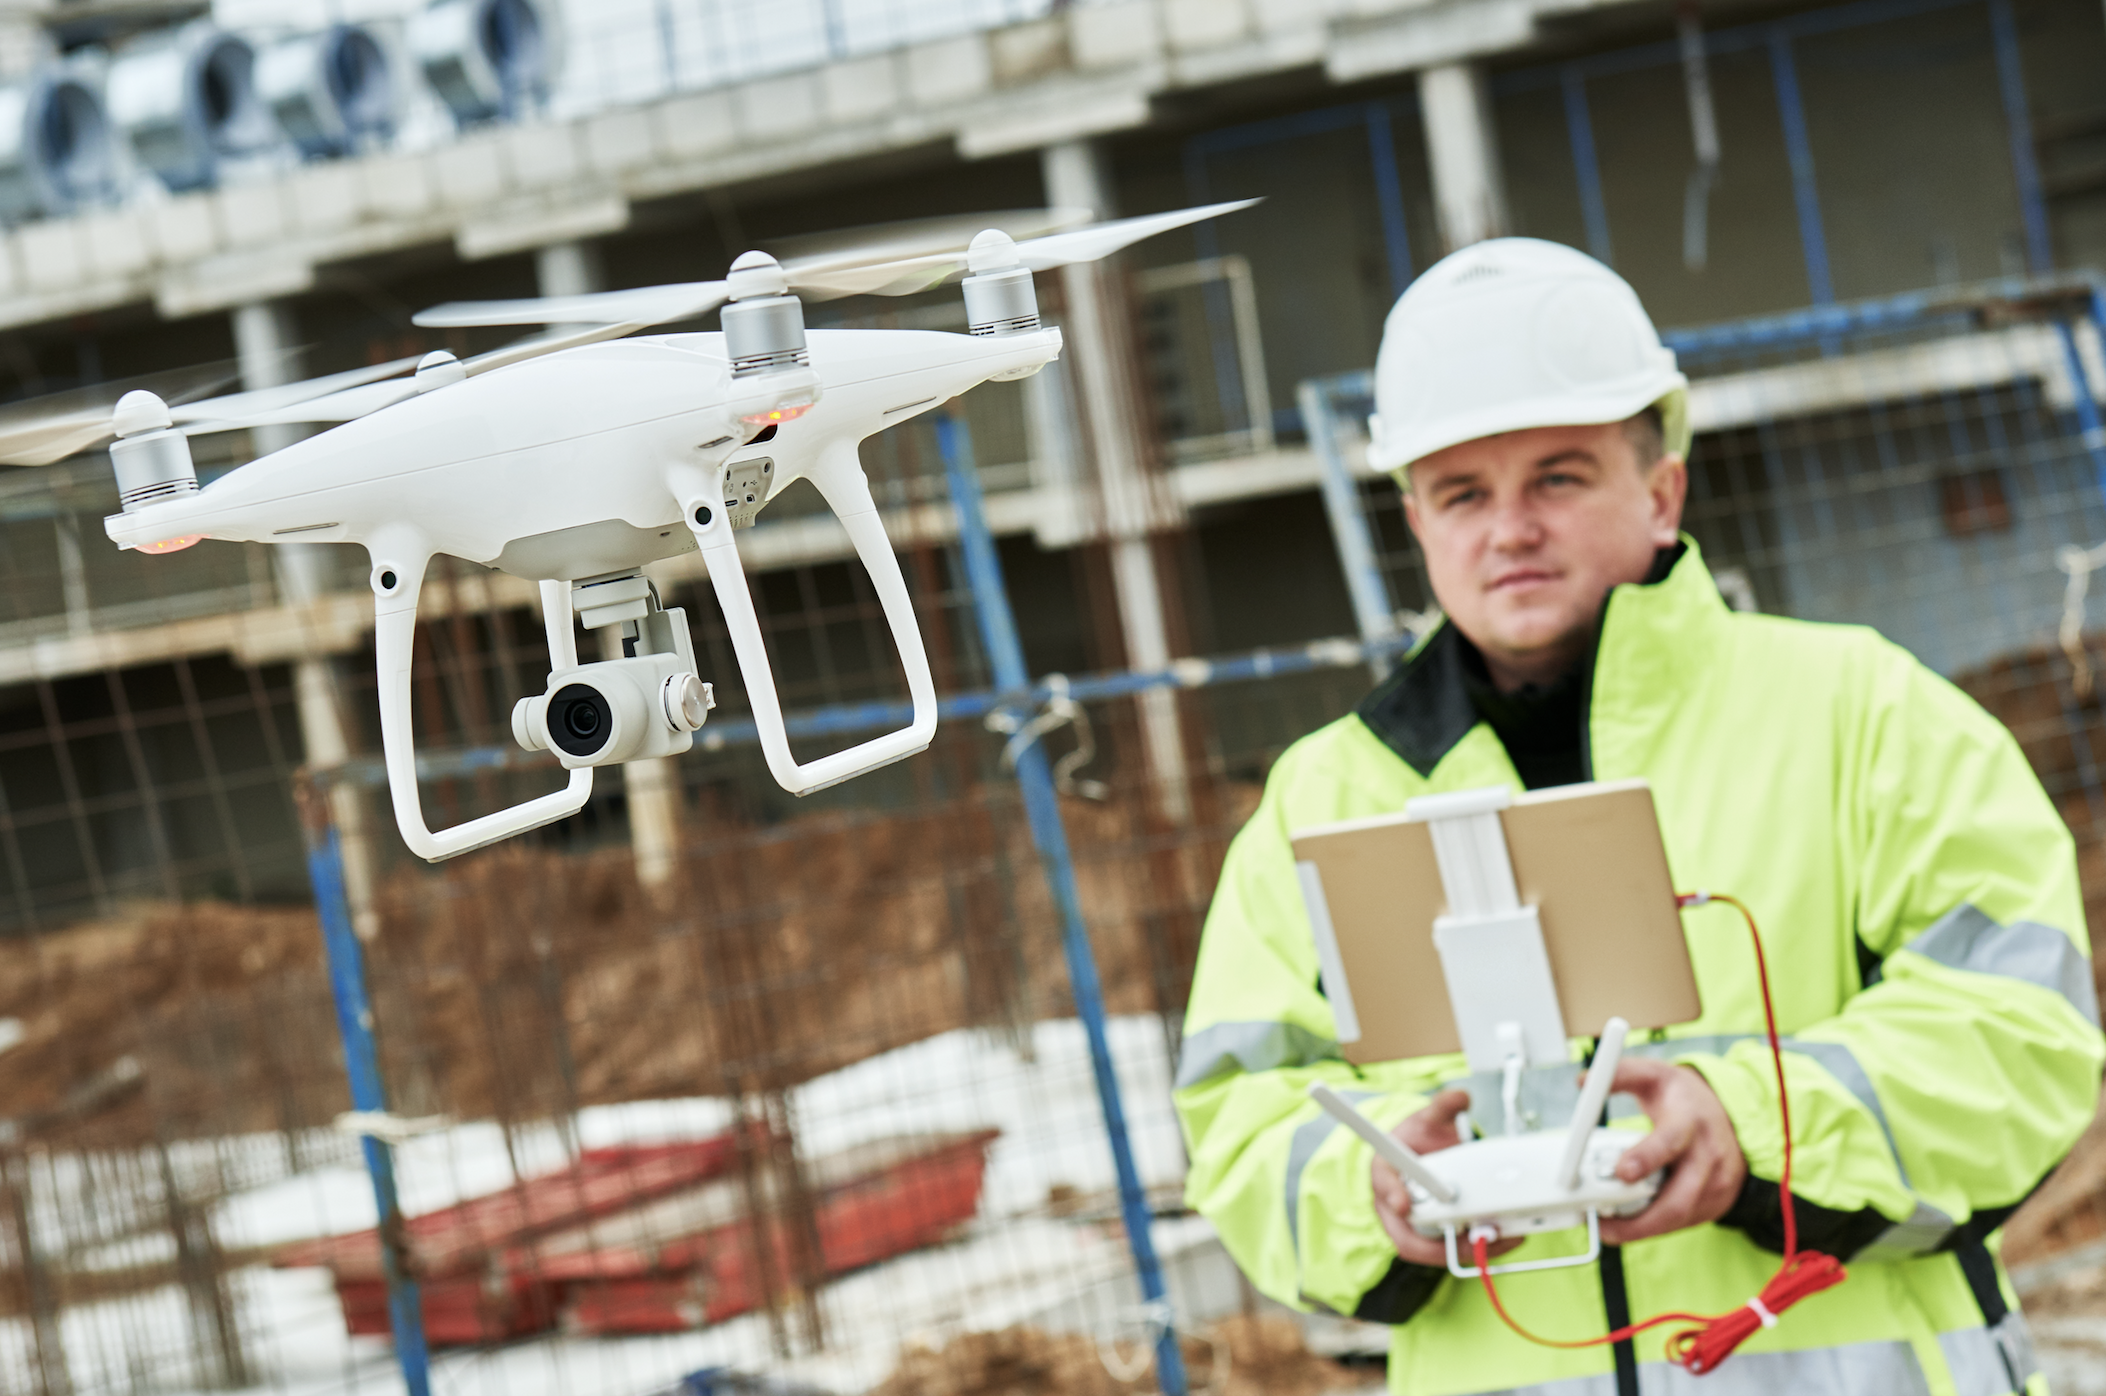 Trusted Provider - Thanks to our industrial background our drone pilots are trusted to fly on active construction sites and in industrial facilities around Ireland. 4Risk Drones works closely with clients to honour site specific requirements.